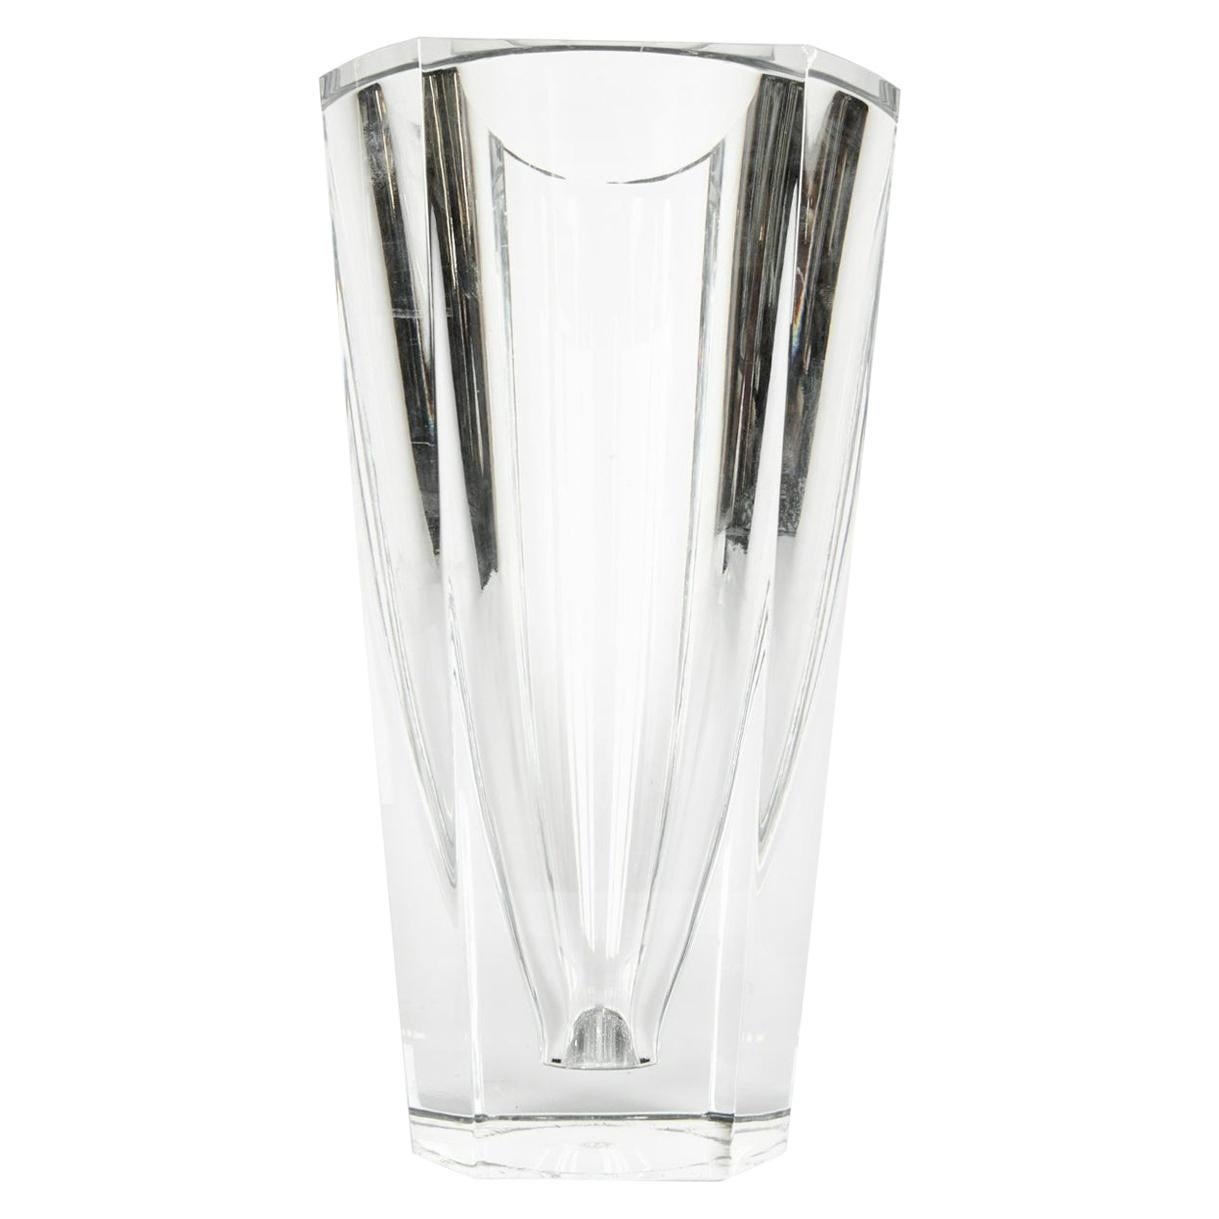 Large Art Deco Baccarat Cut Crystal Vase